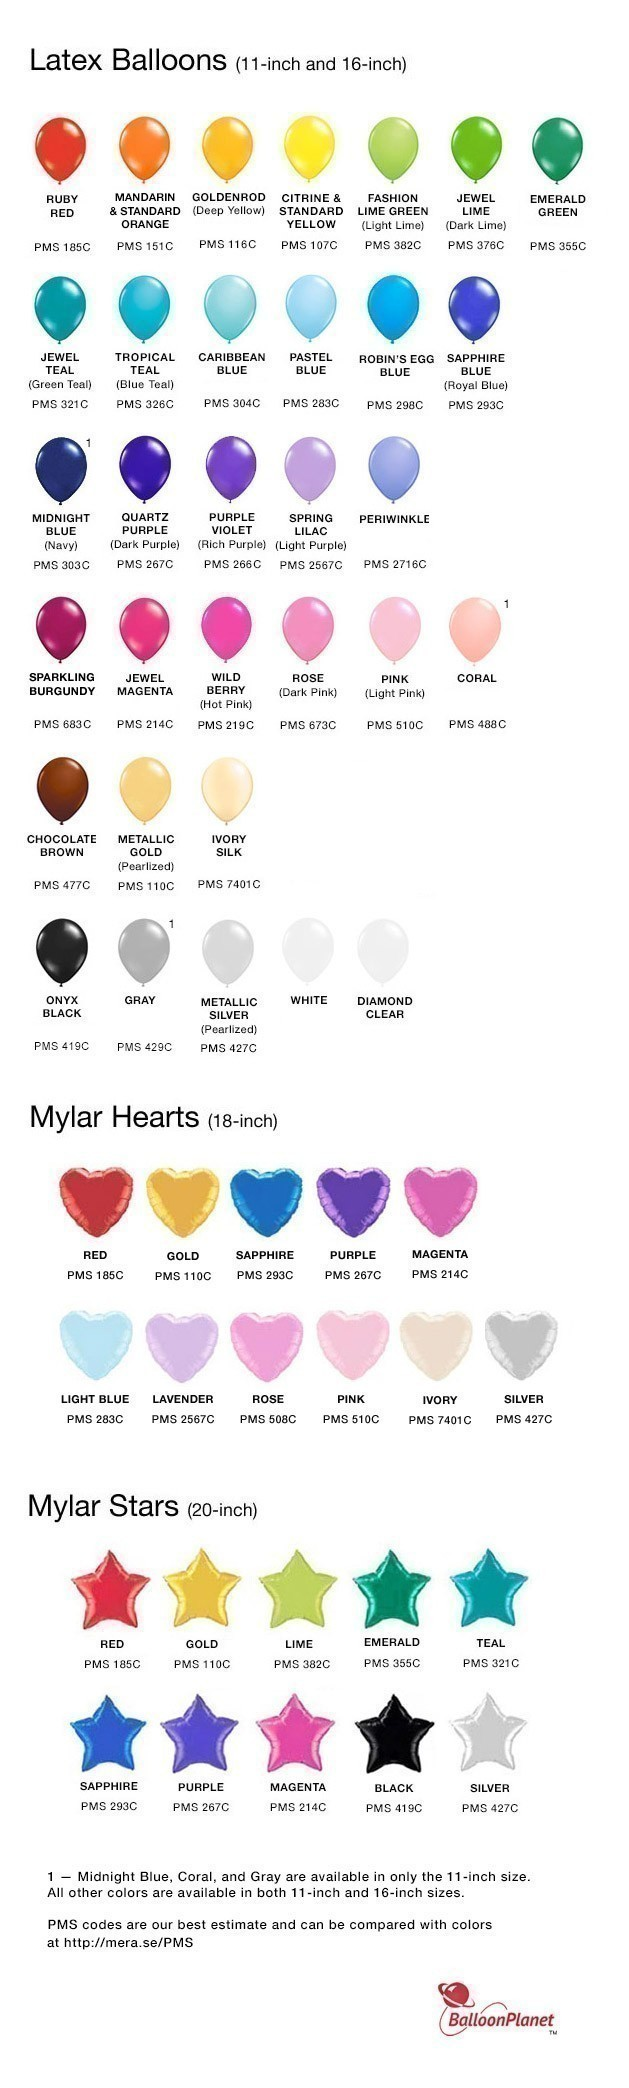 Balloon bouquet delivery balloon decorating 866 340 - Color Chart